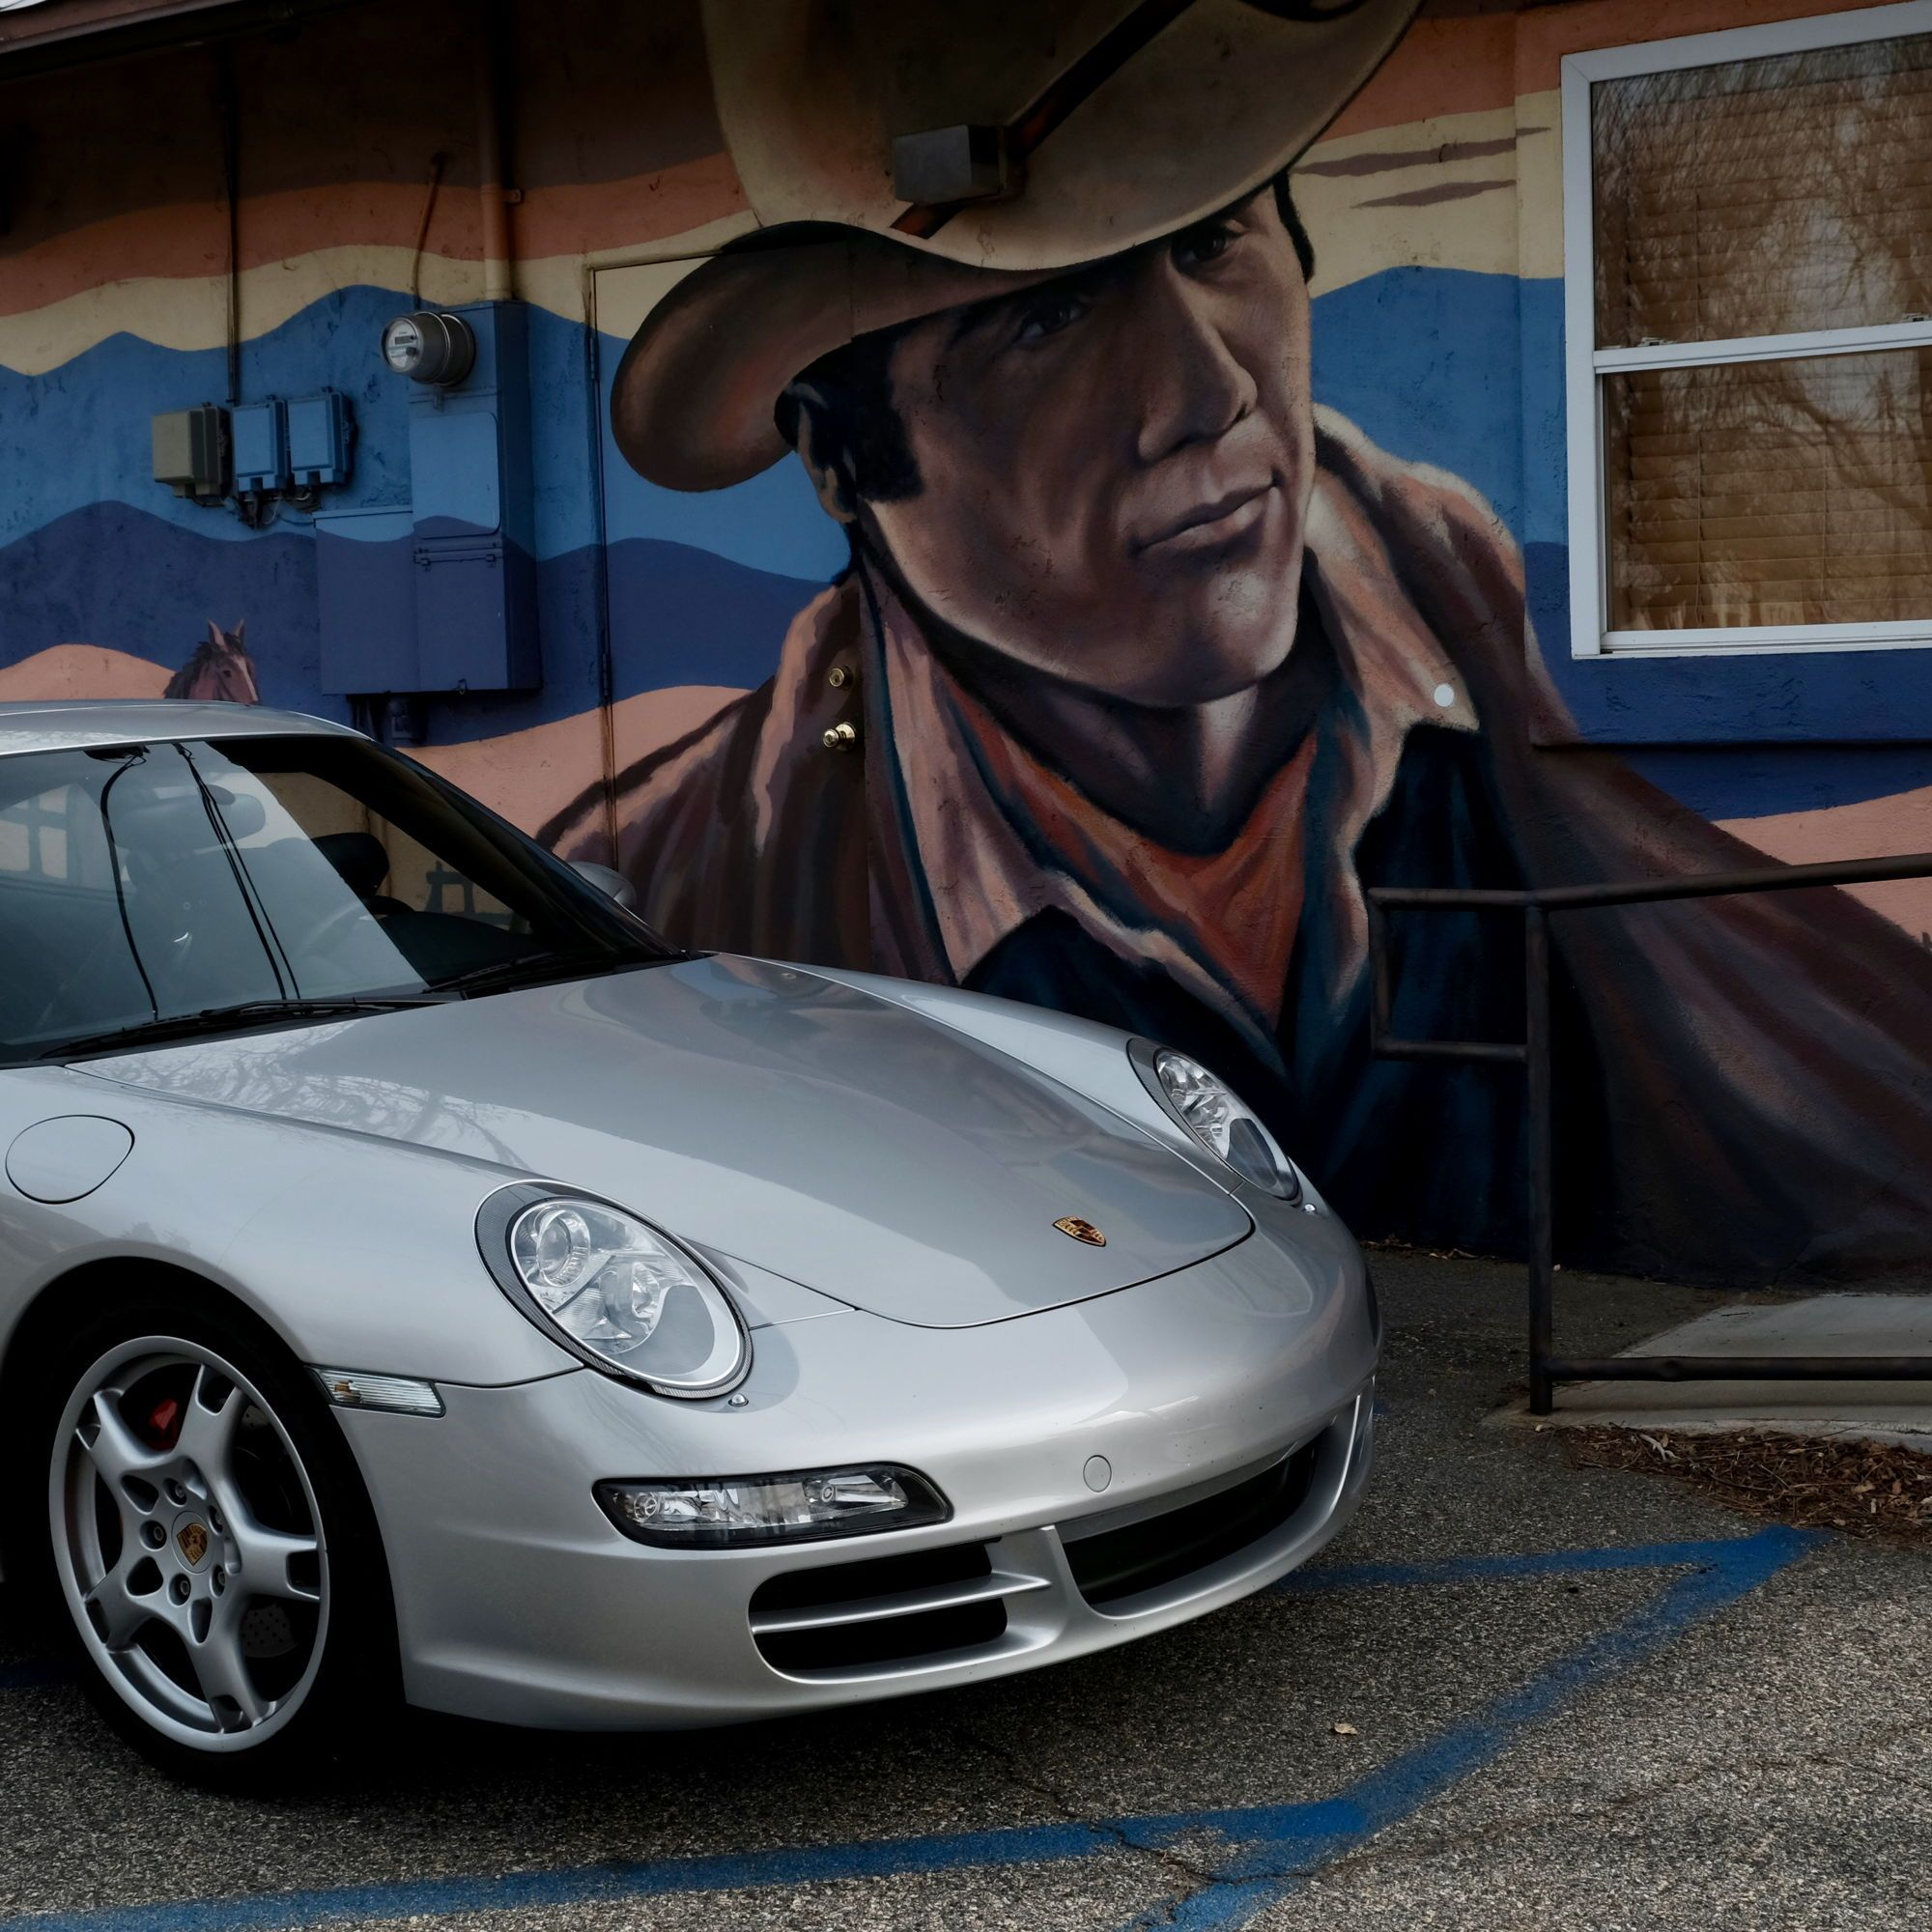 Asia Carrera Riding i never imagined it would be so good | porsche asia pacific